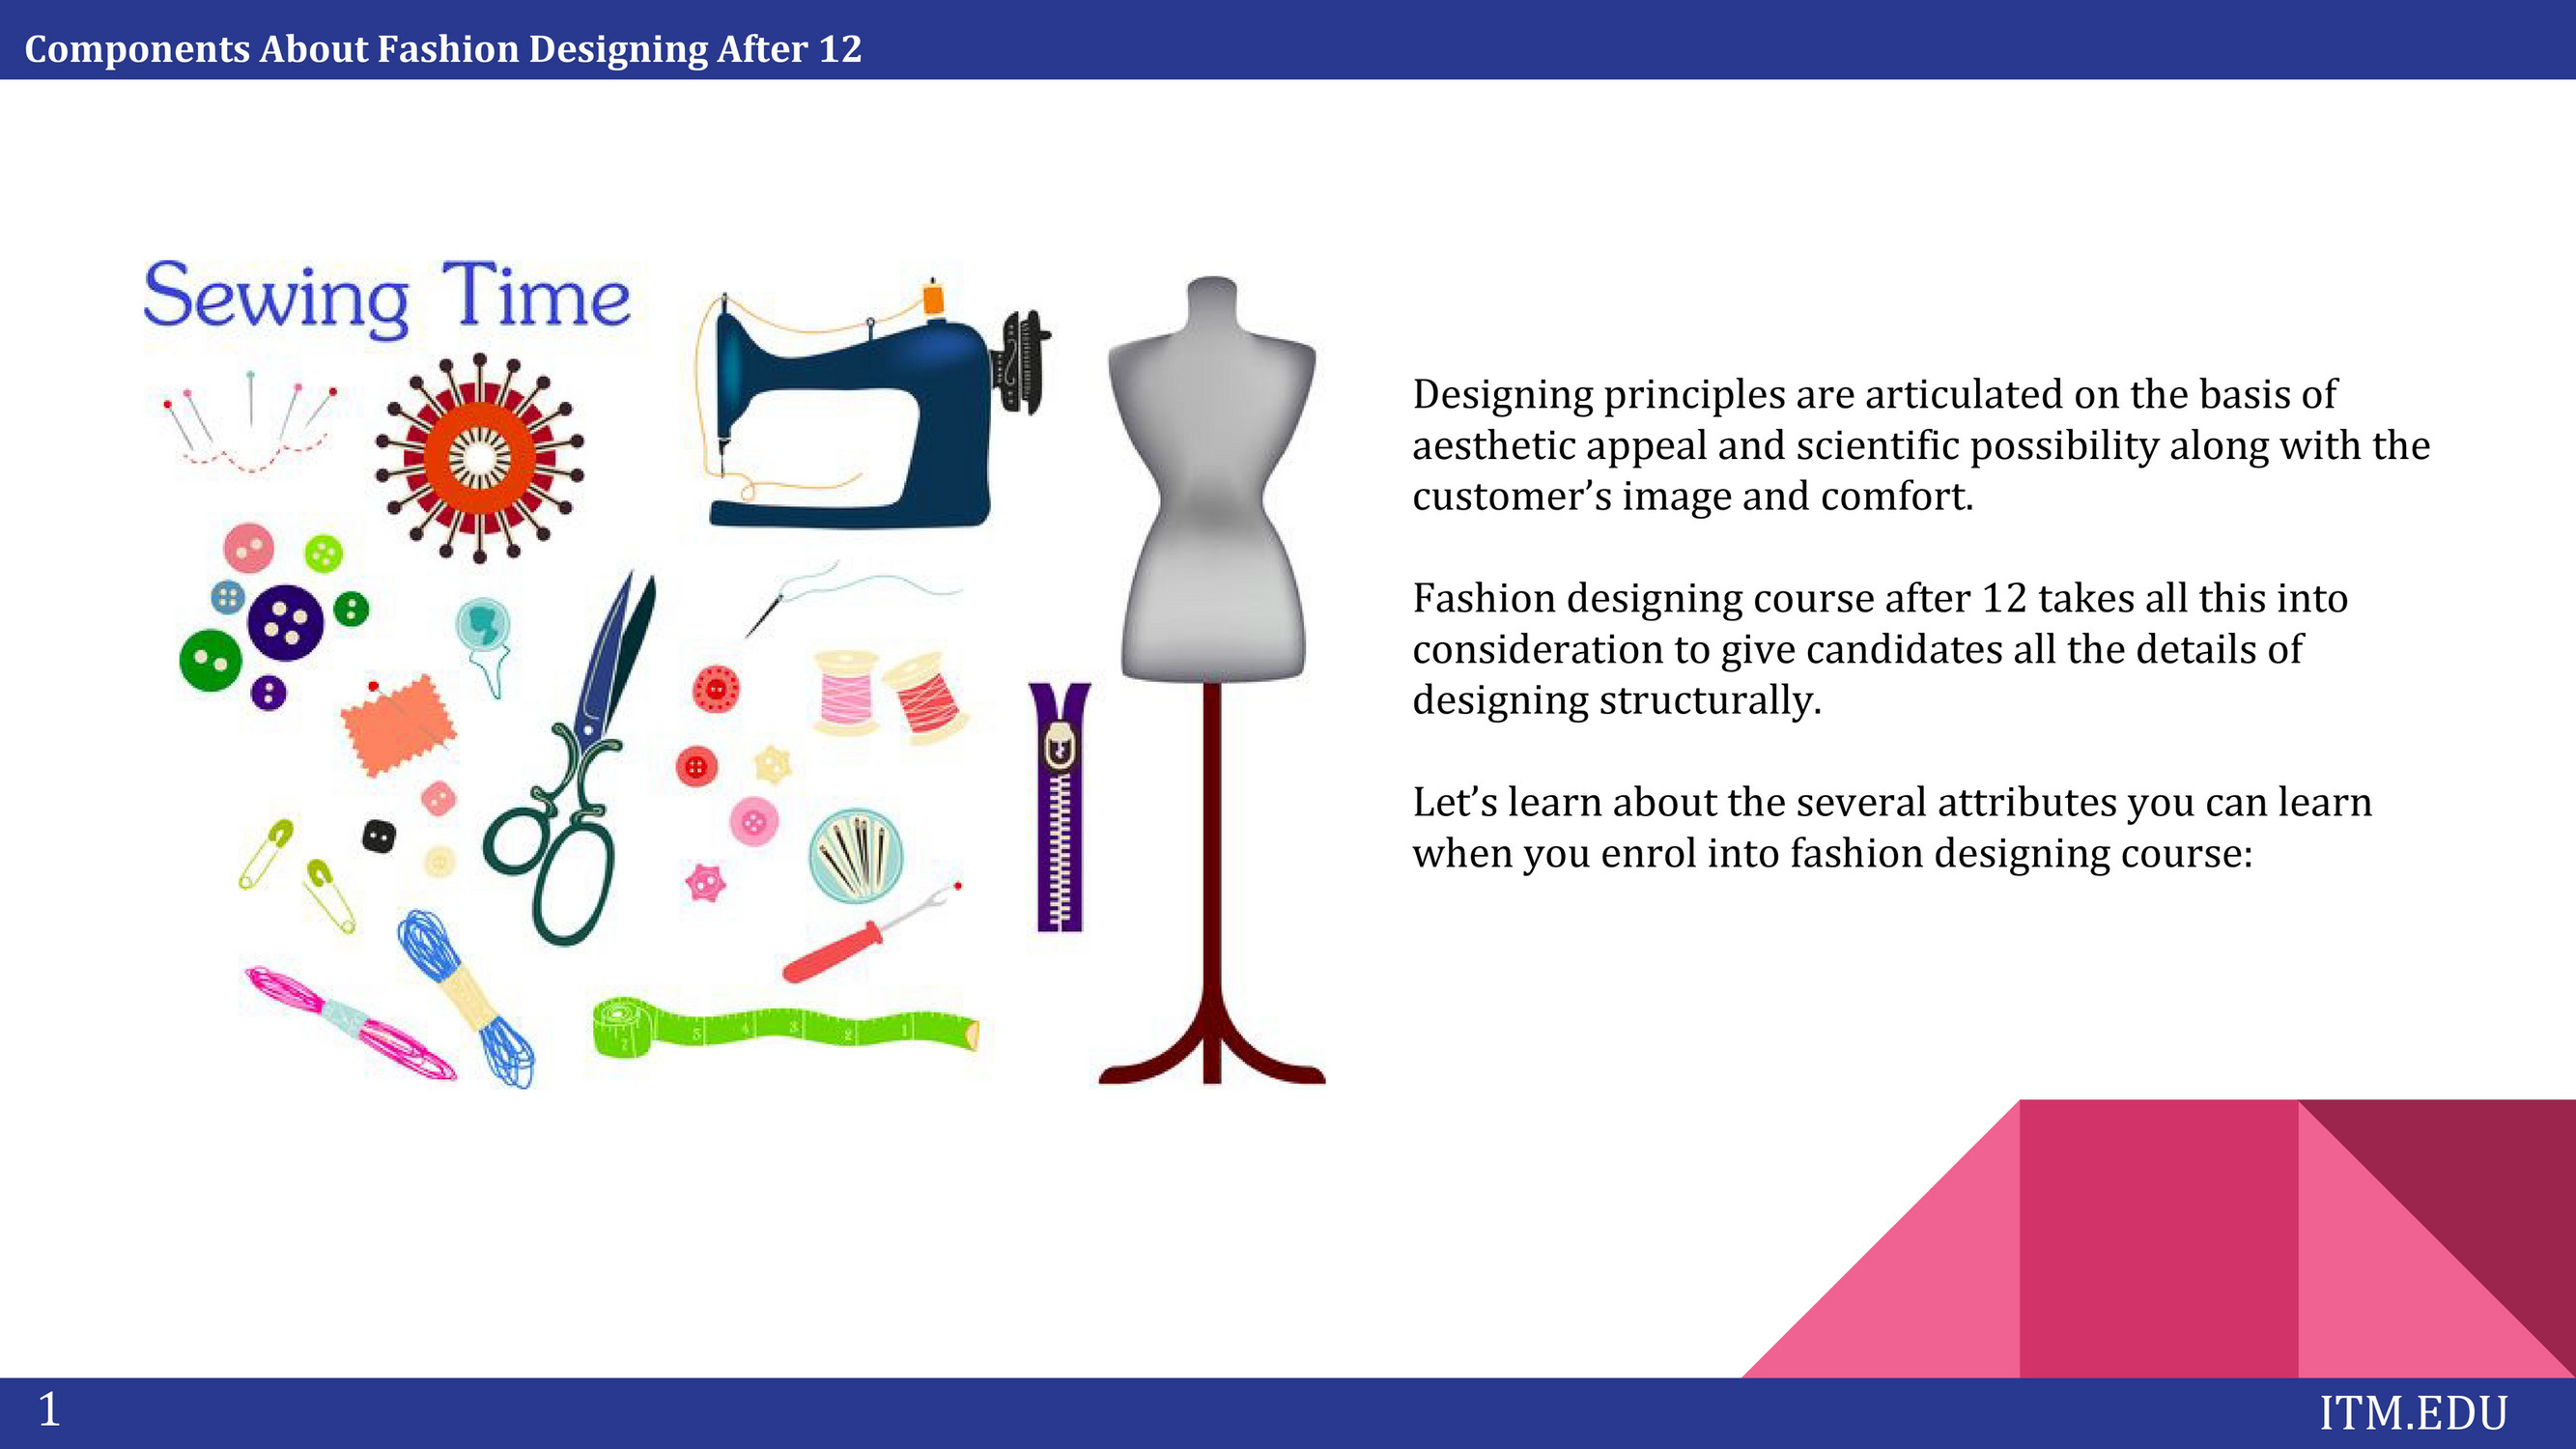 Itm Institute Components About Fashion Designing After 12 Page 4 Created With Publitas Com